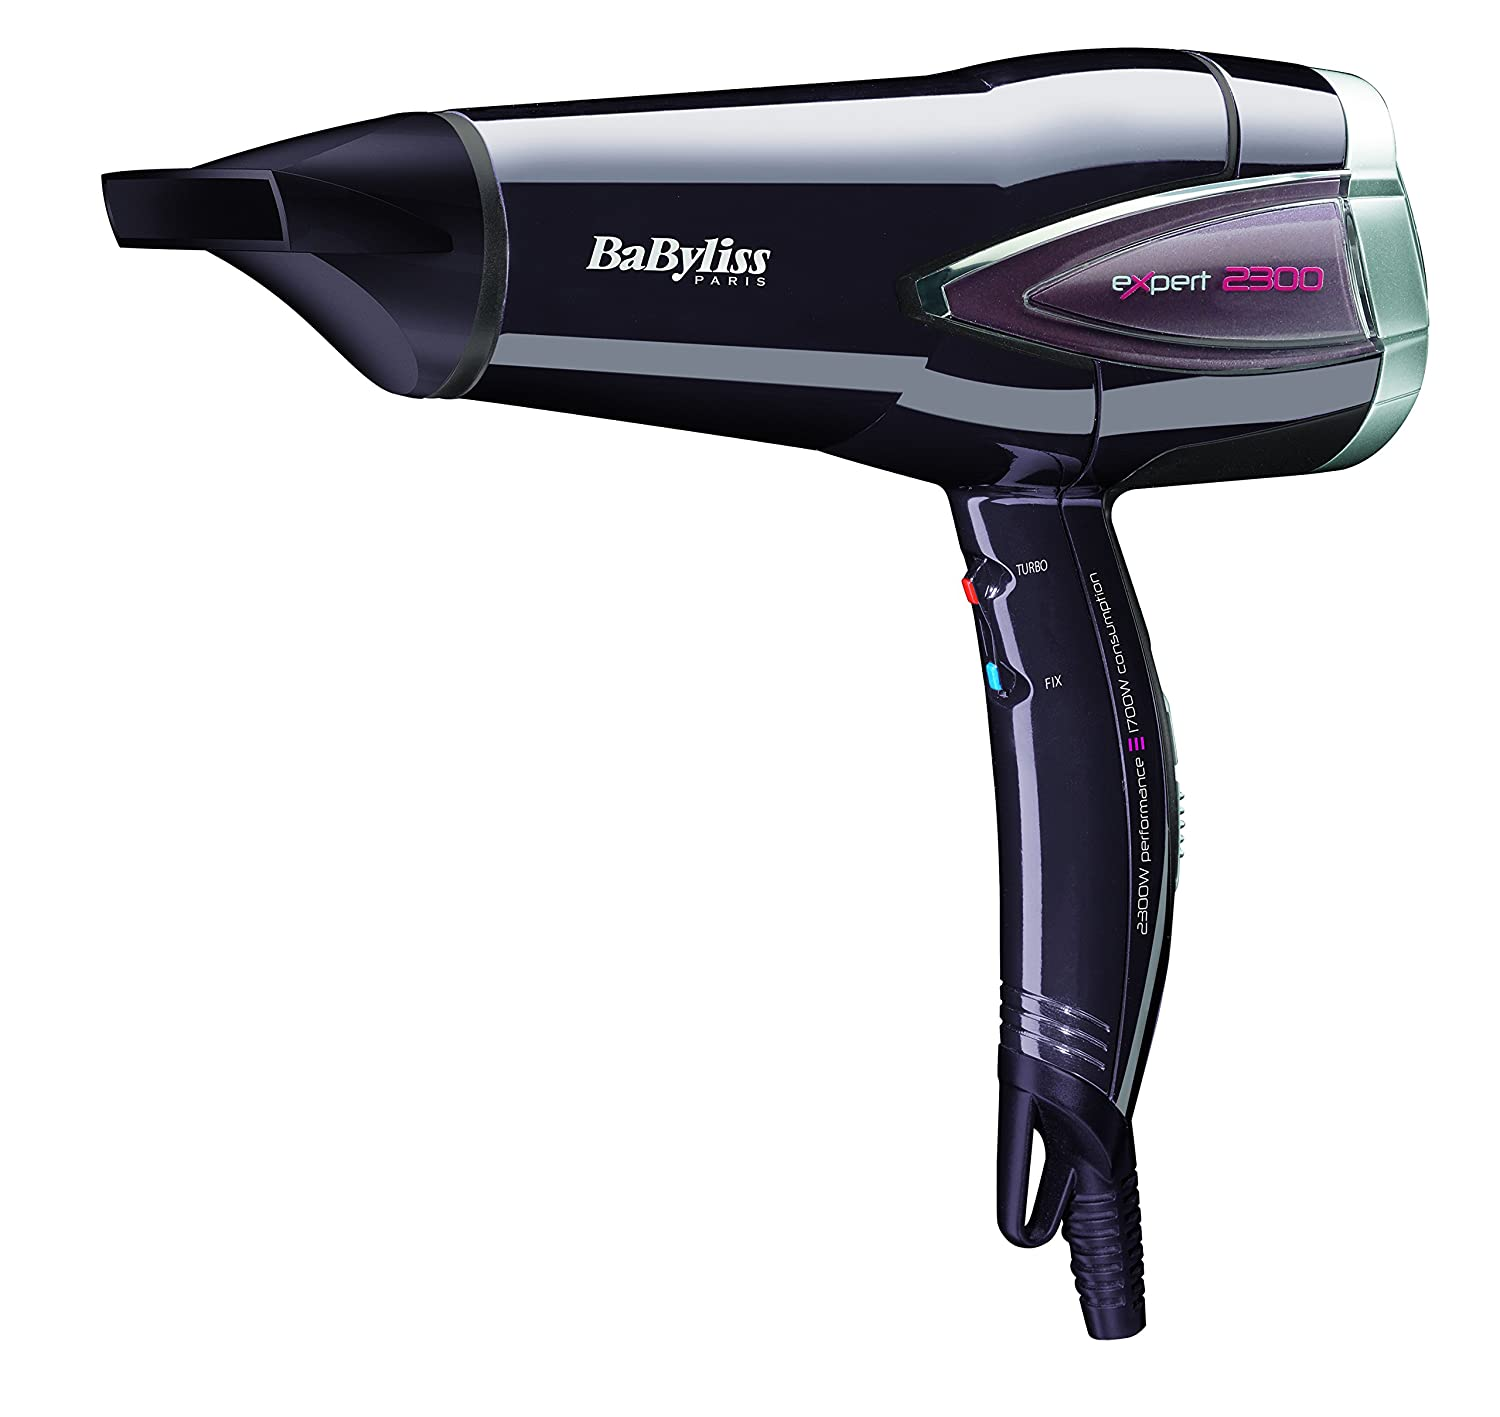 Babyliss D362E Expert 2300W Hair Dryer